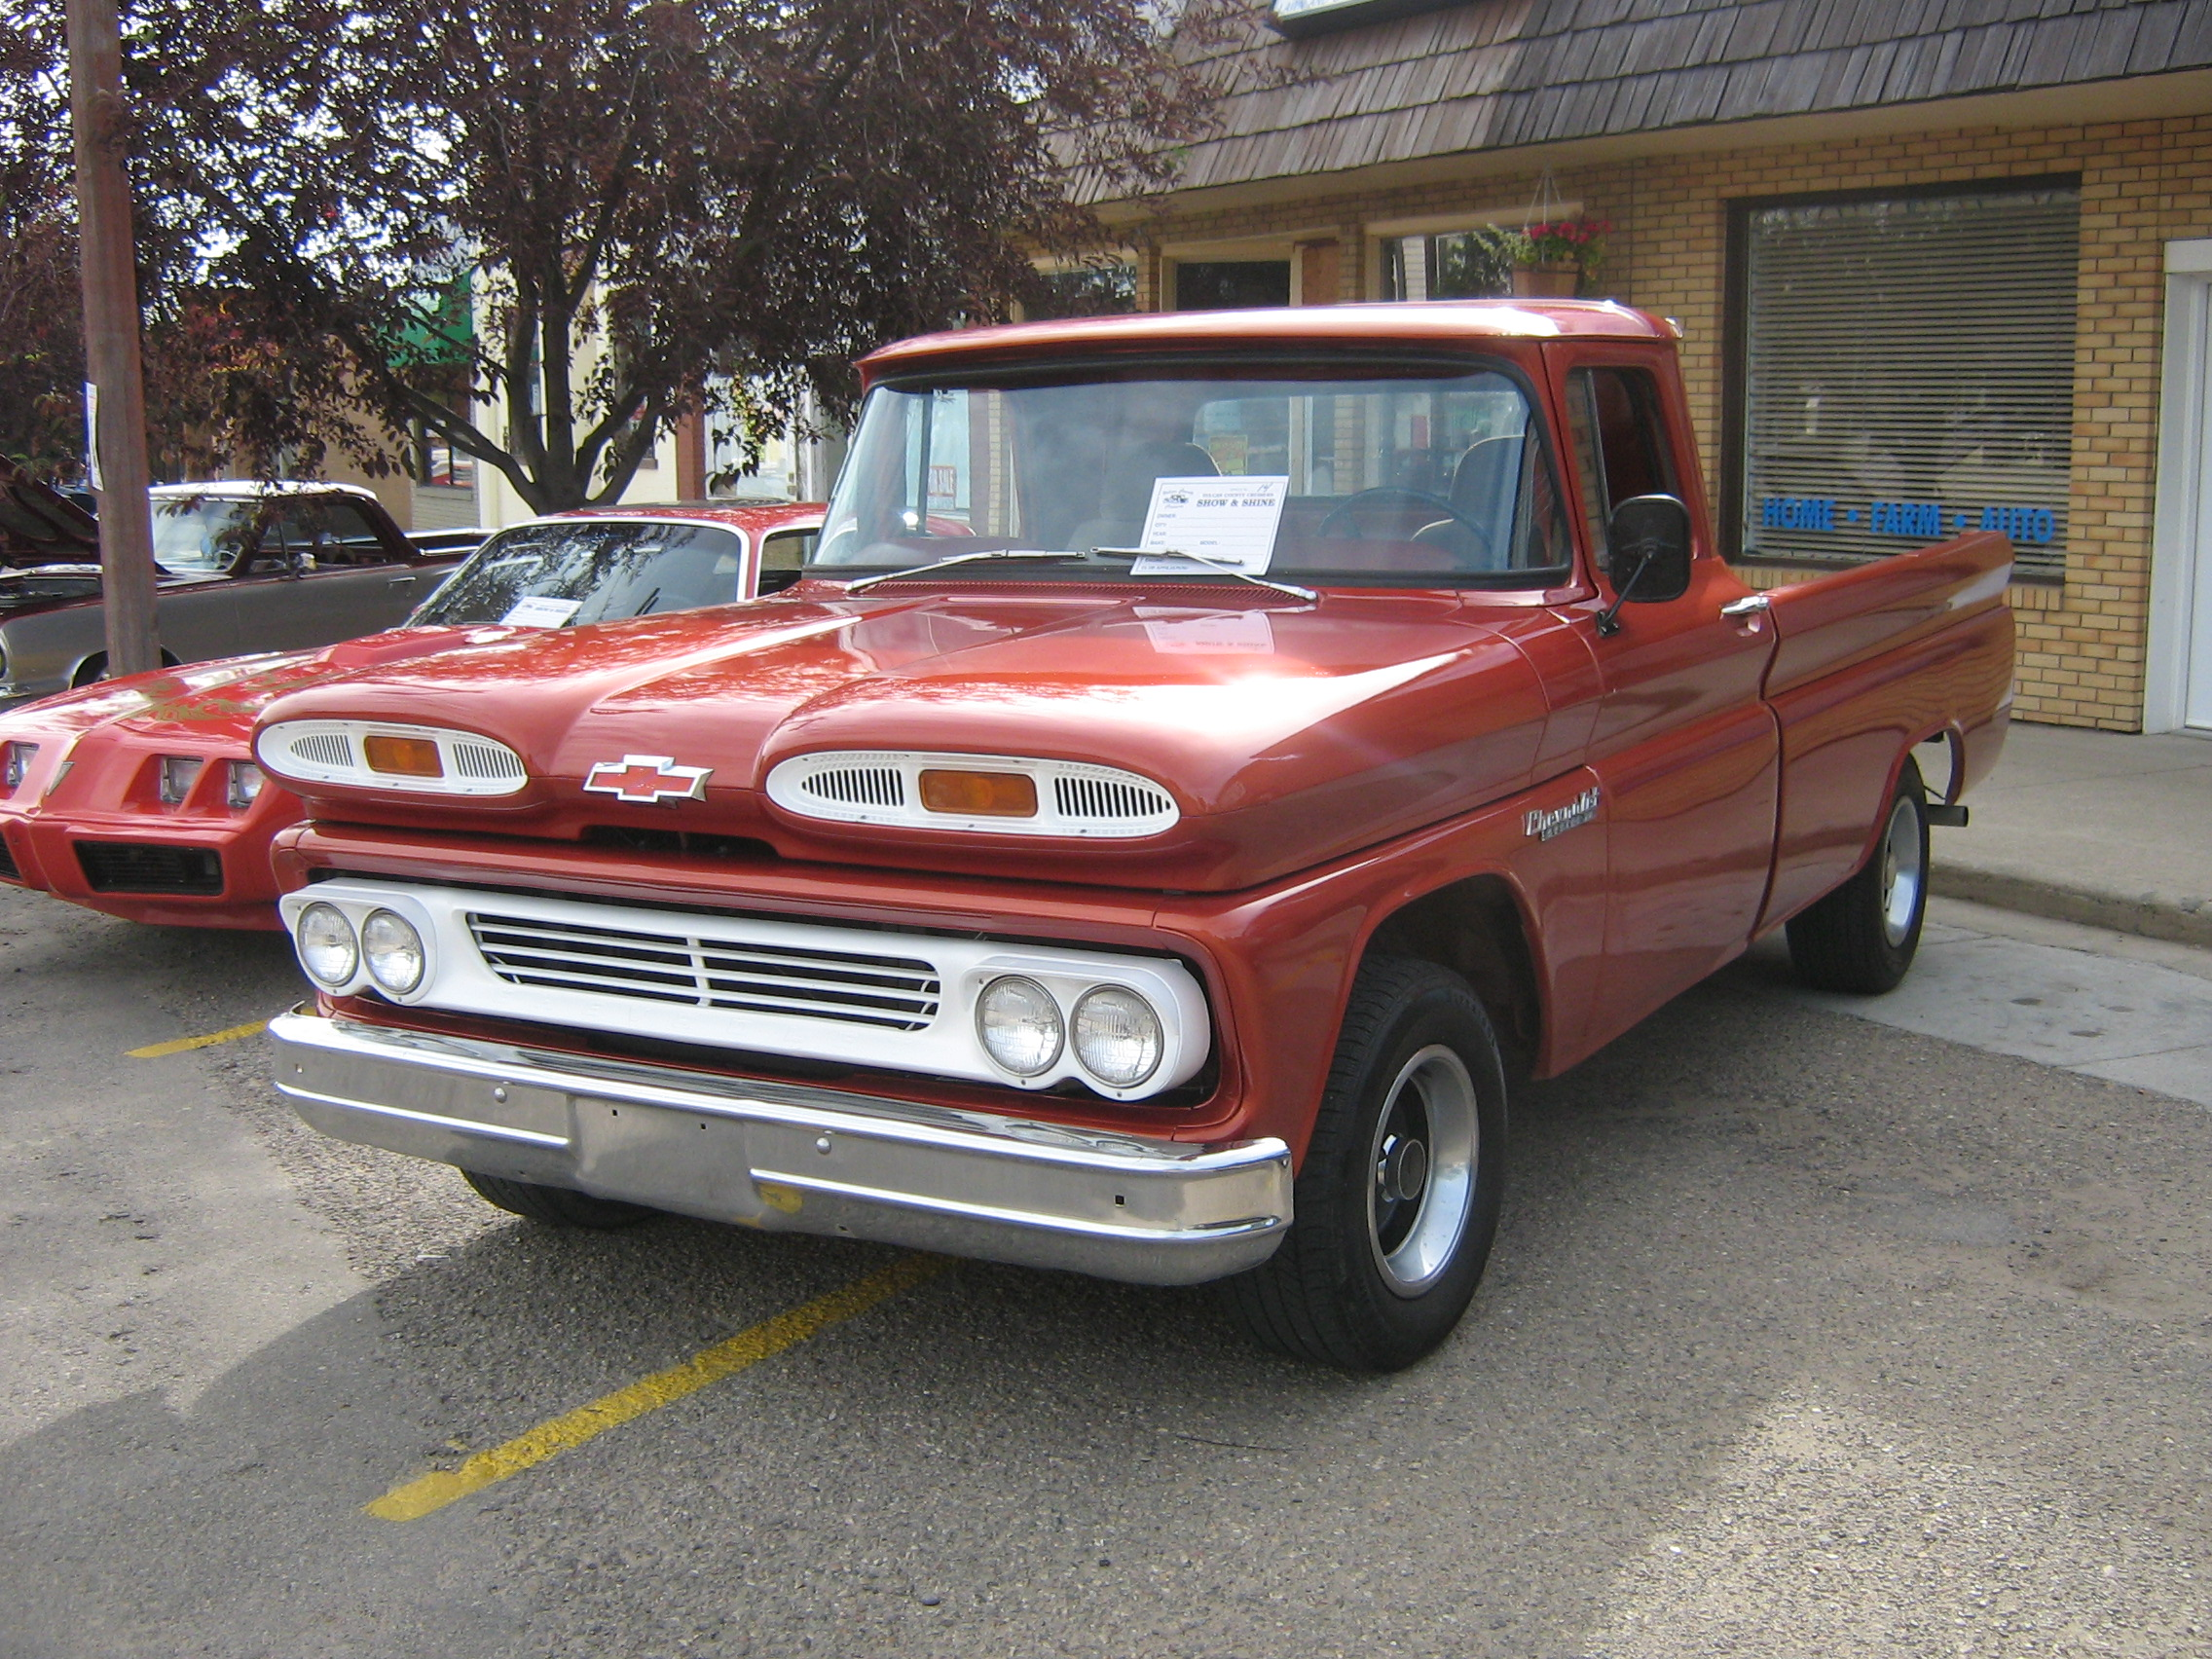 58 And 59 Chevy Apache Trucks Work That Turned Into Classics 1961 Pickup Truck 1959 Chevrolet